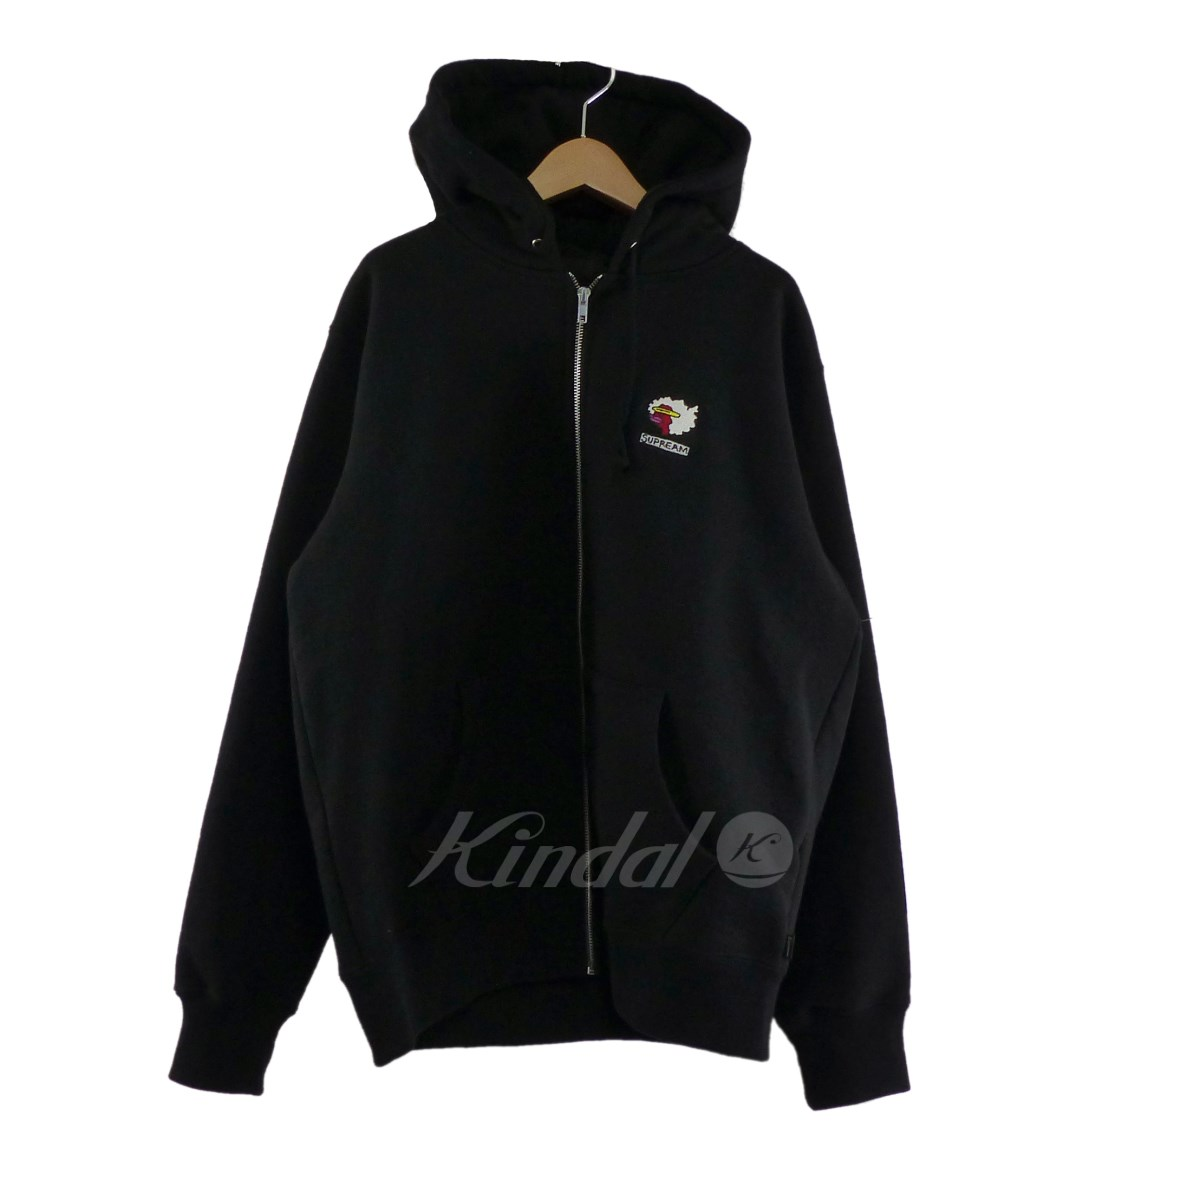 【中古】SUPREME 2017AW Gonz ramm Zip Up Sweatshirt パーカー 【送料無料】 【044900】 【KIND1551】